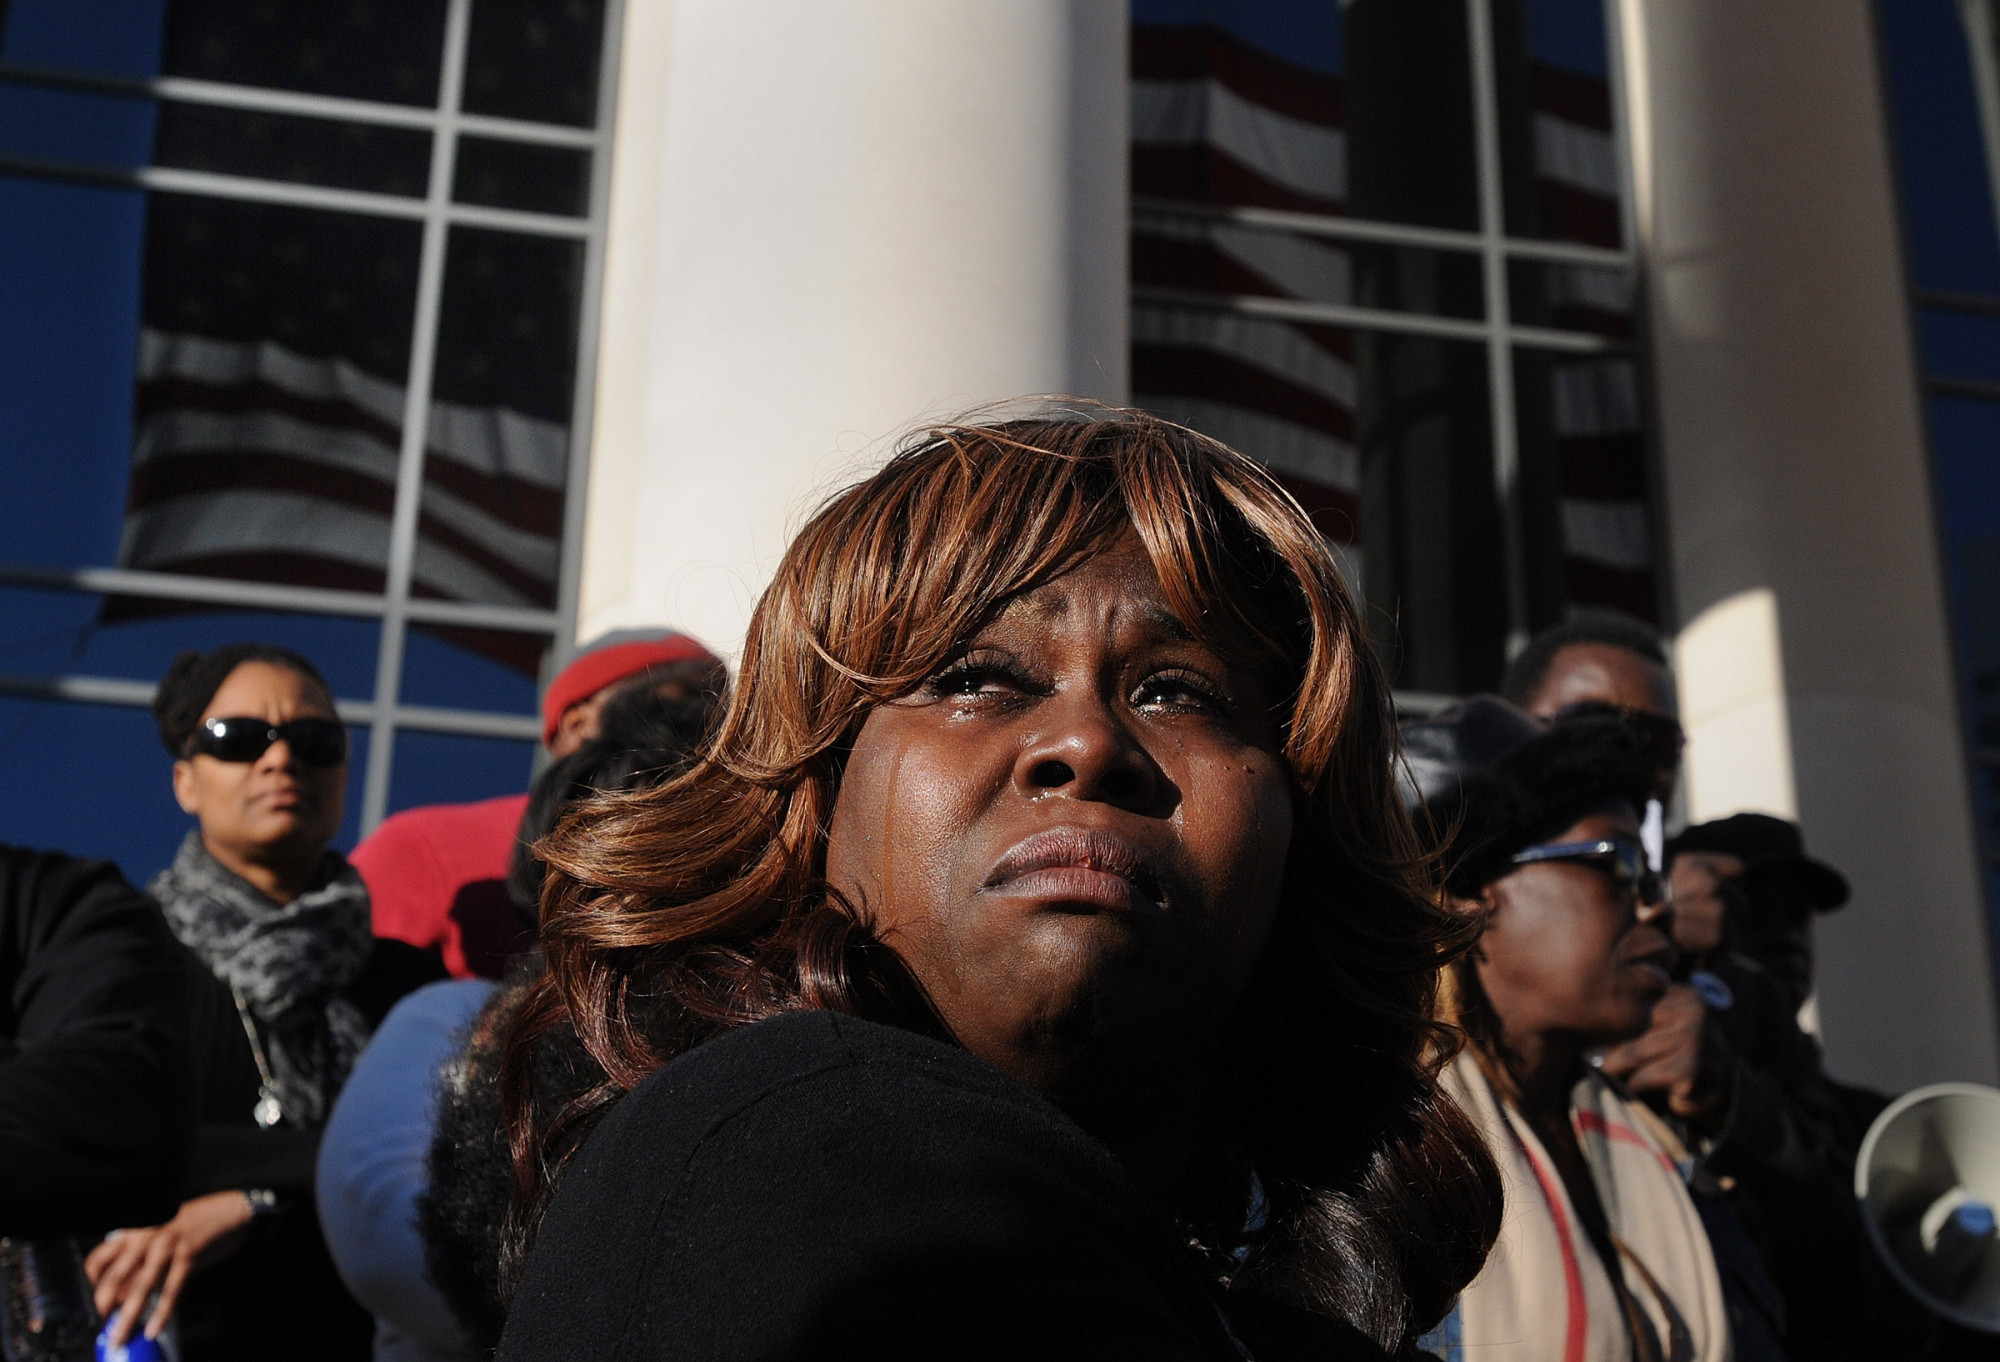 Denise Hunt tears up as she finds out the jury is deadlocked on the first-degree murder charge for Michael Dunn outside of the Duval County Courthouse as the jury enters the fourth day of deliberations, Feb. 15, 2014, in Jacksonville, Fla.